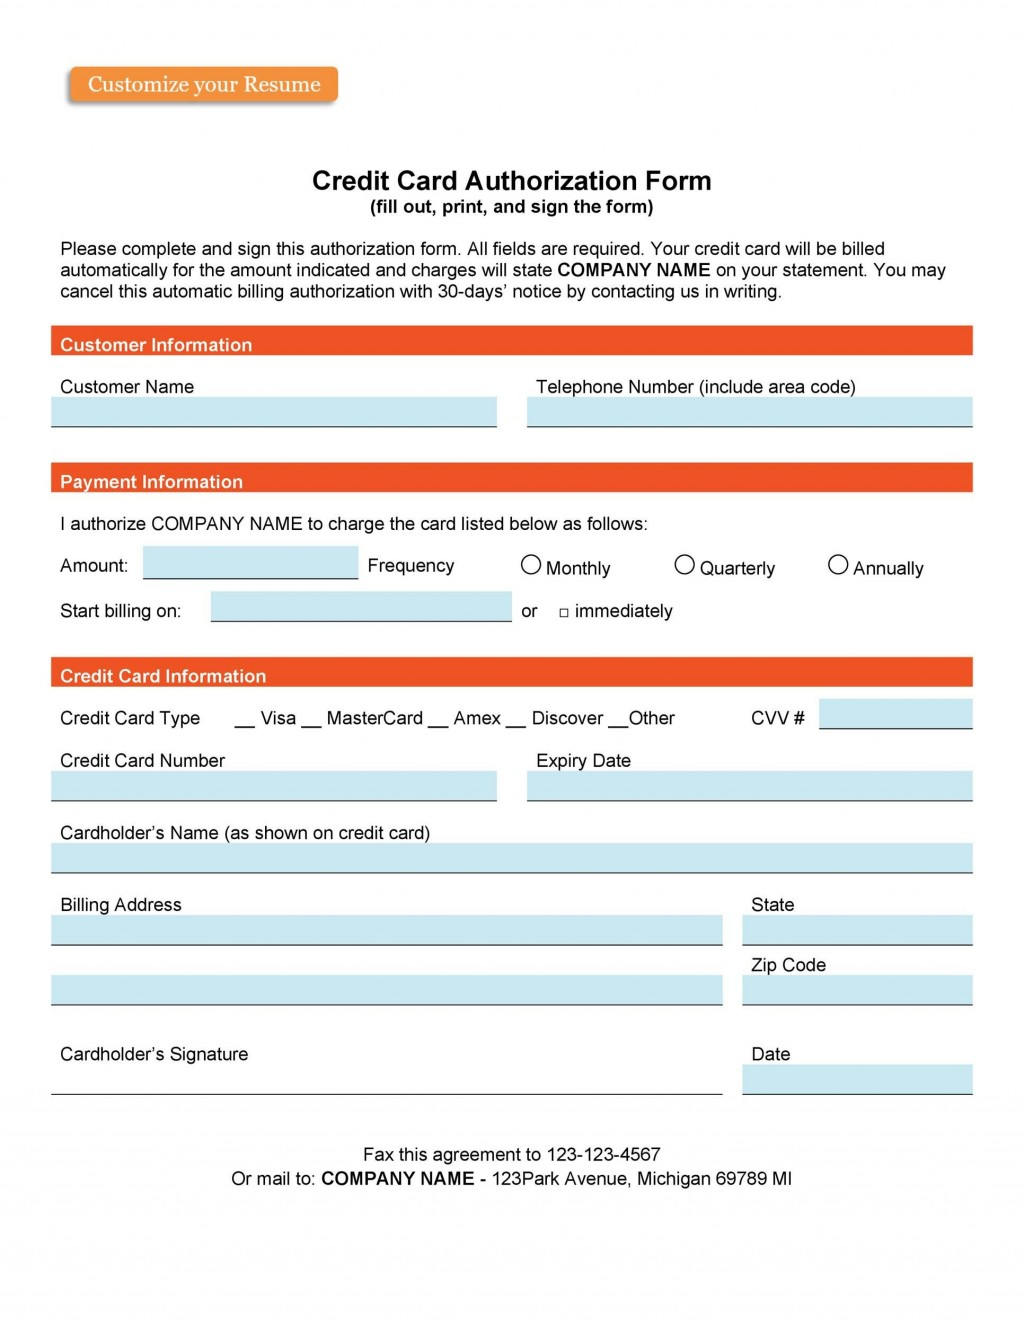 007 Unbelievable Credit Card Form Template Highest Quality  Html Example Codepen Authorization FreeLarge